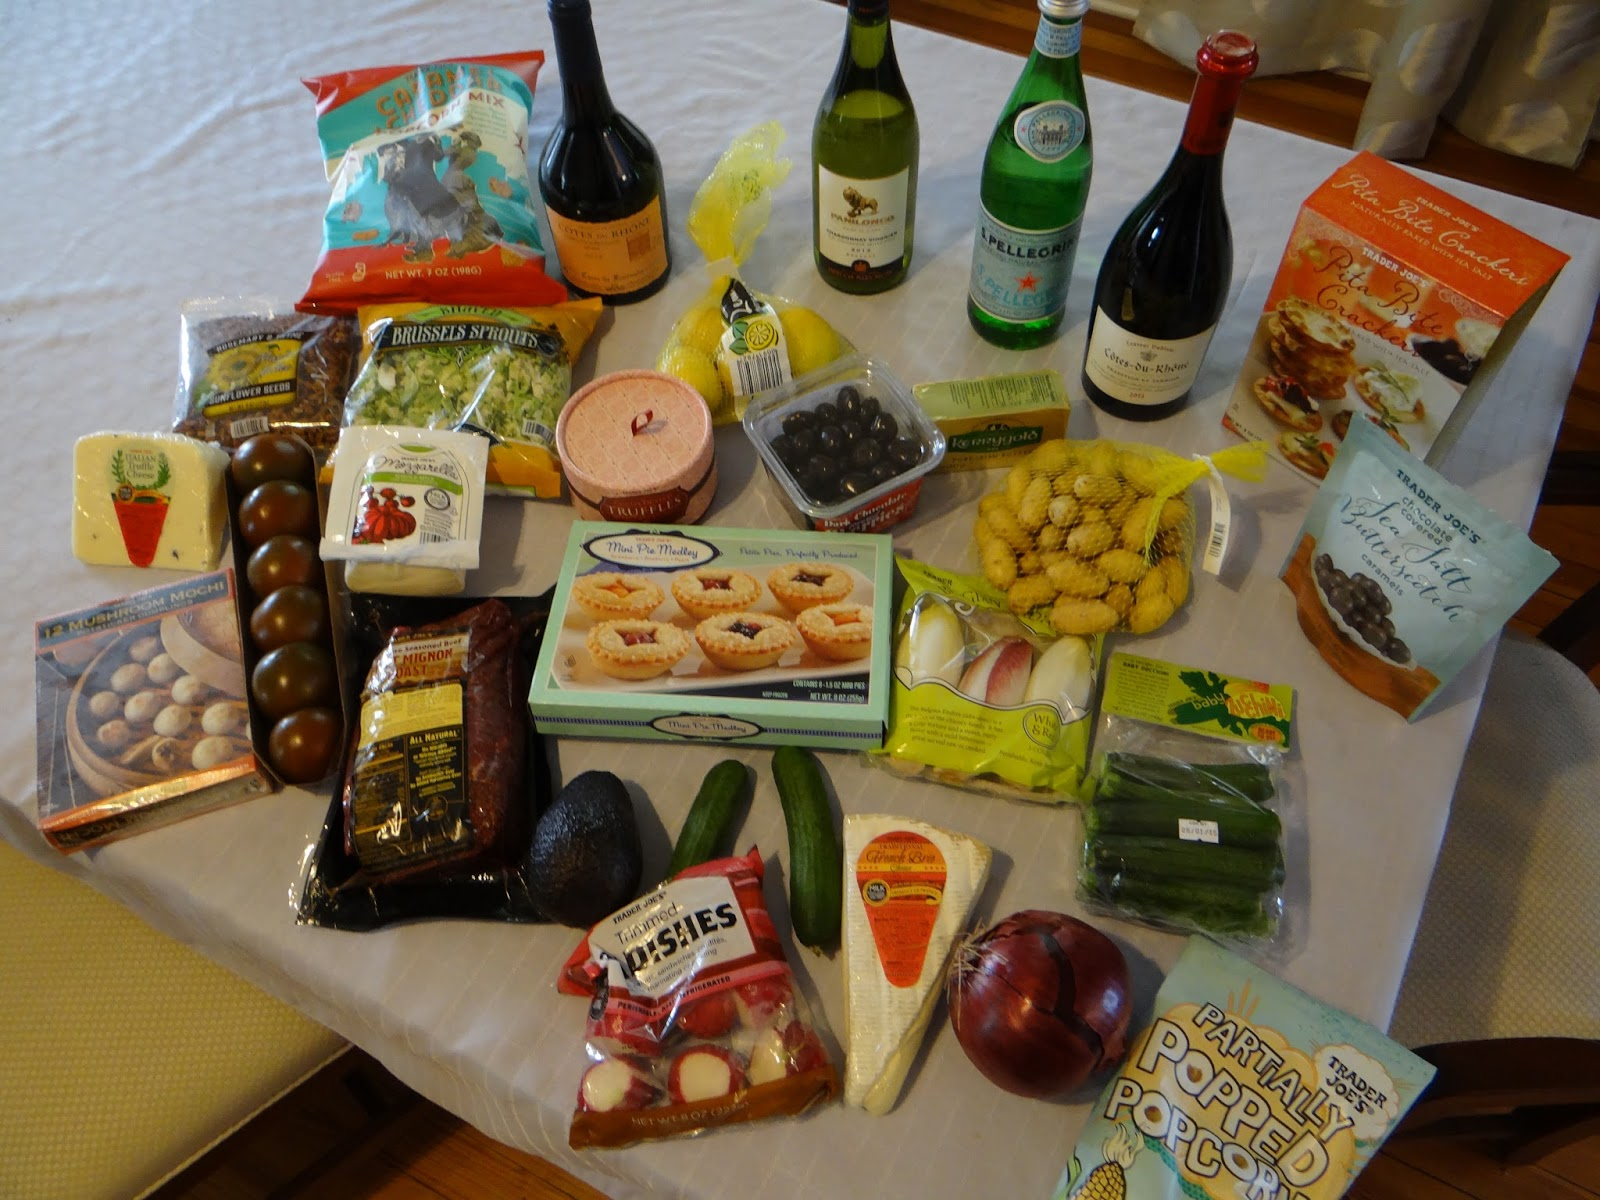 This Is The Table Full Of Ingredients Before Trader JOes Dinner Party In April